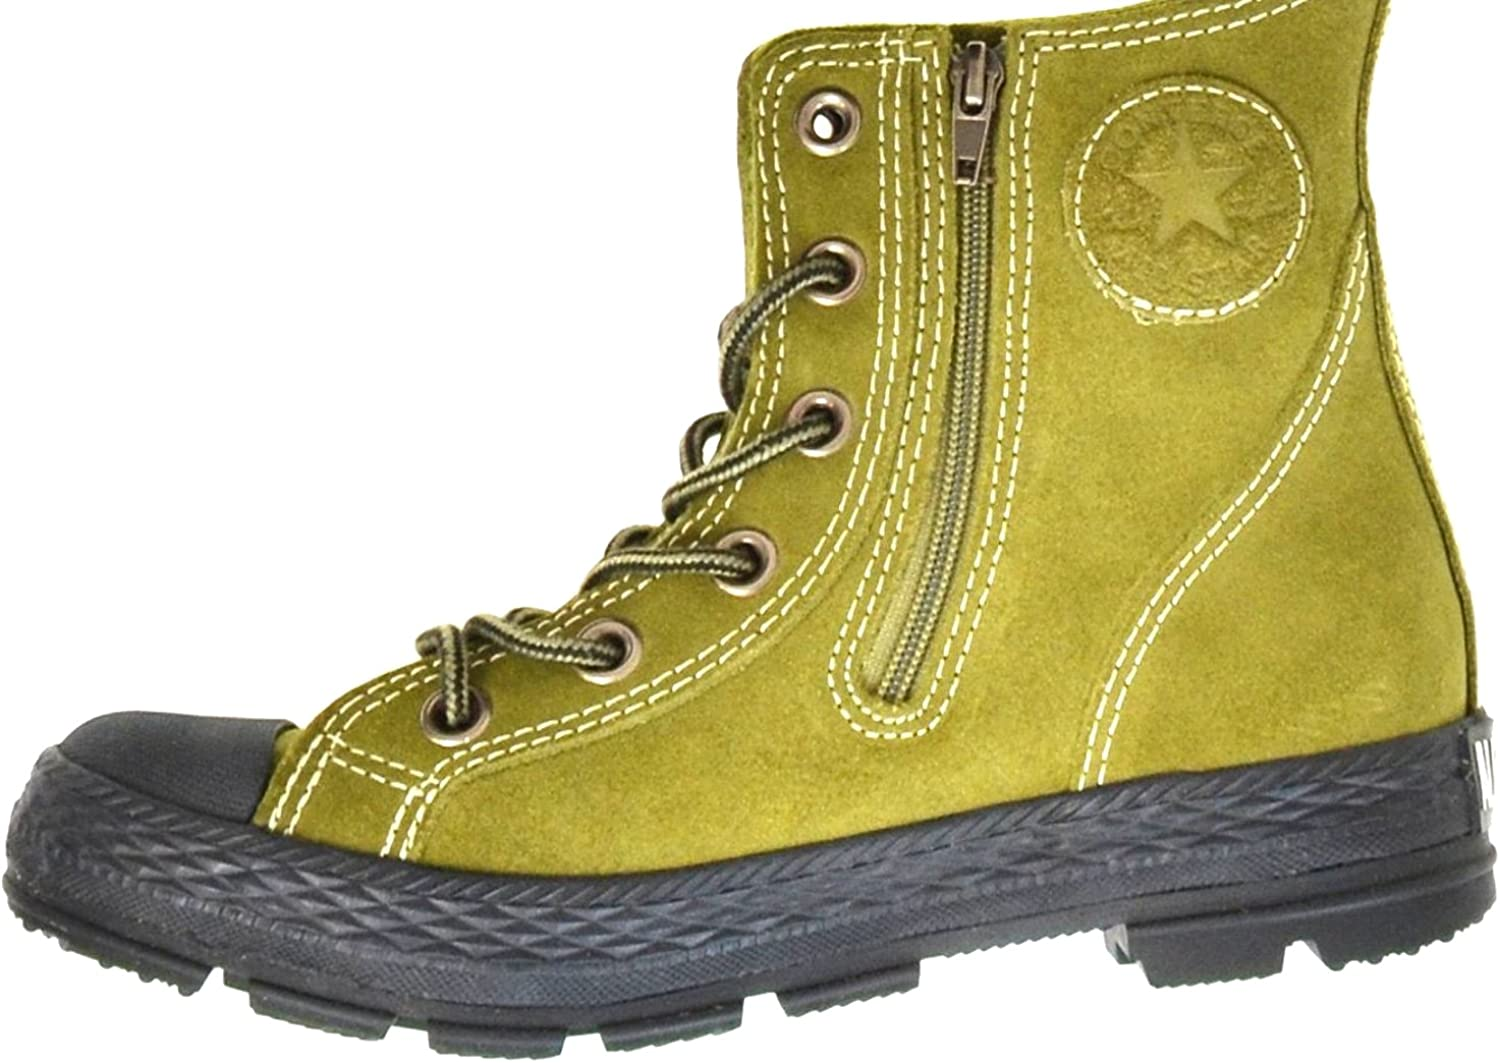 Converse CT Outsider Hi olive Branch